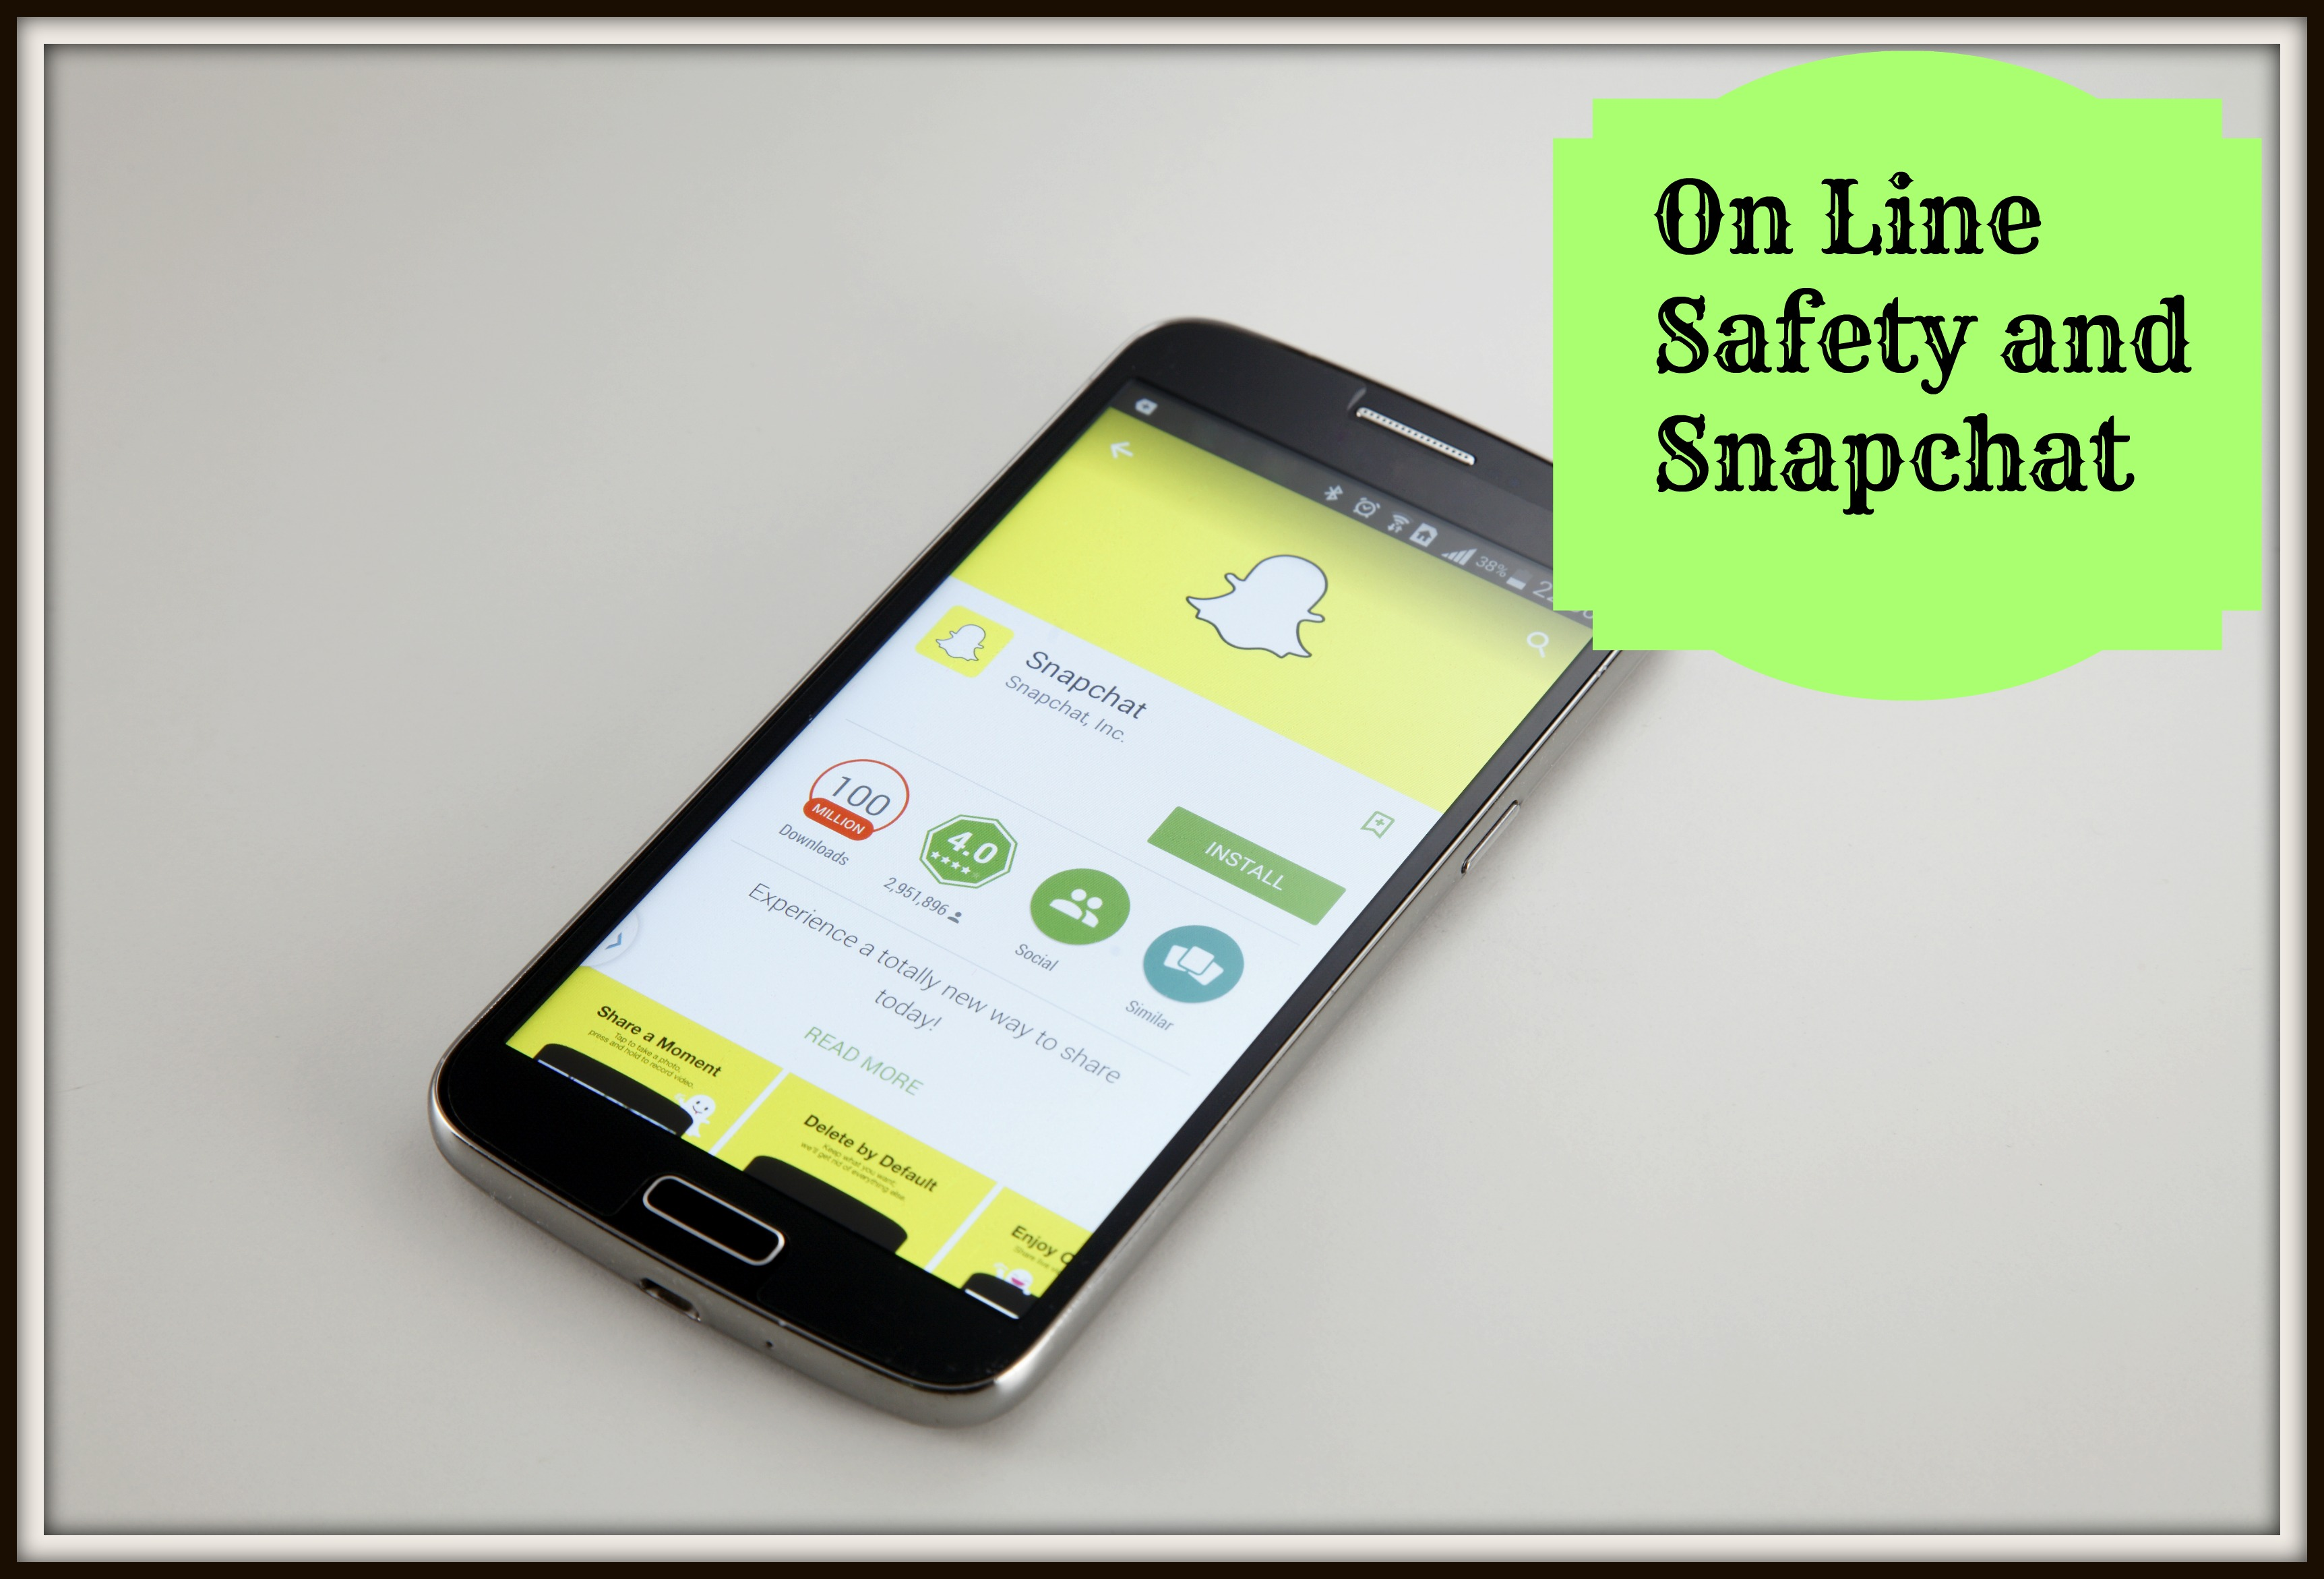 Online Safety and Snapchat - Thrifty Mommas Tips